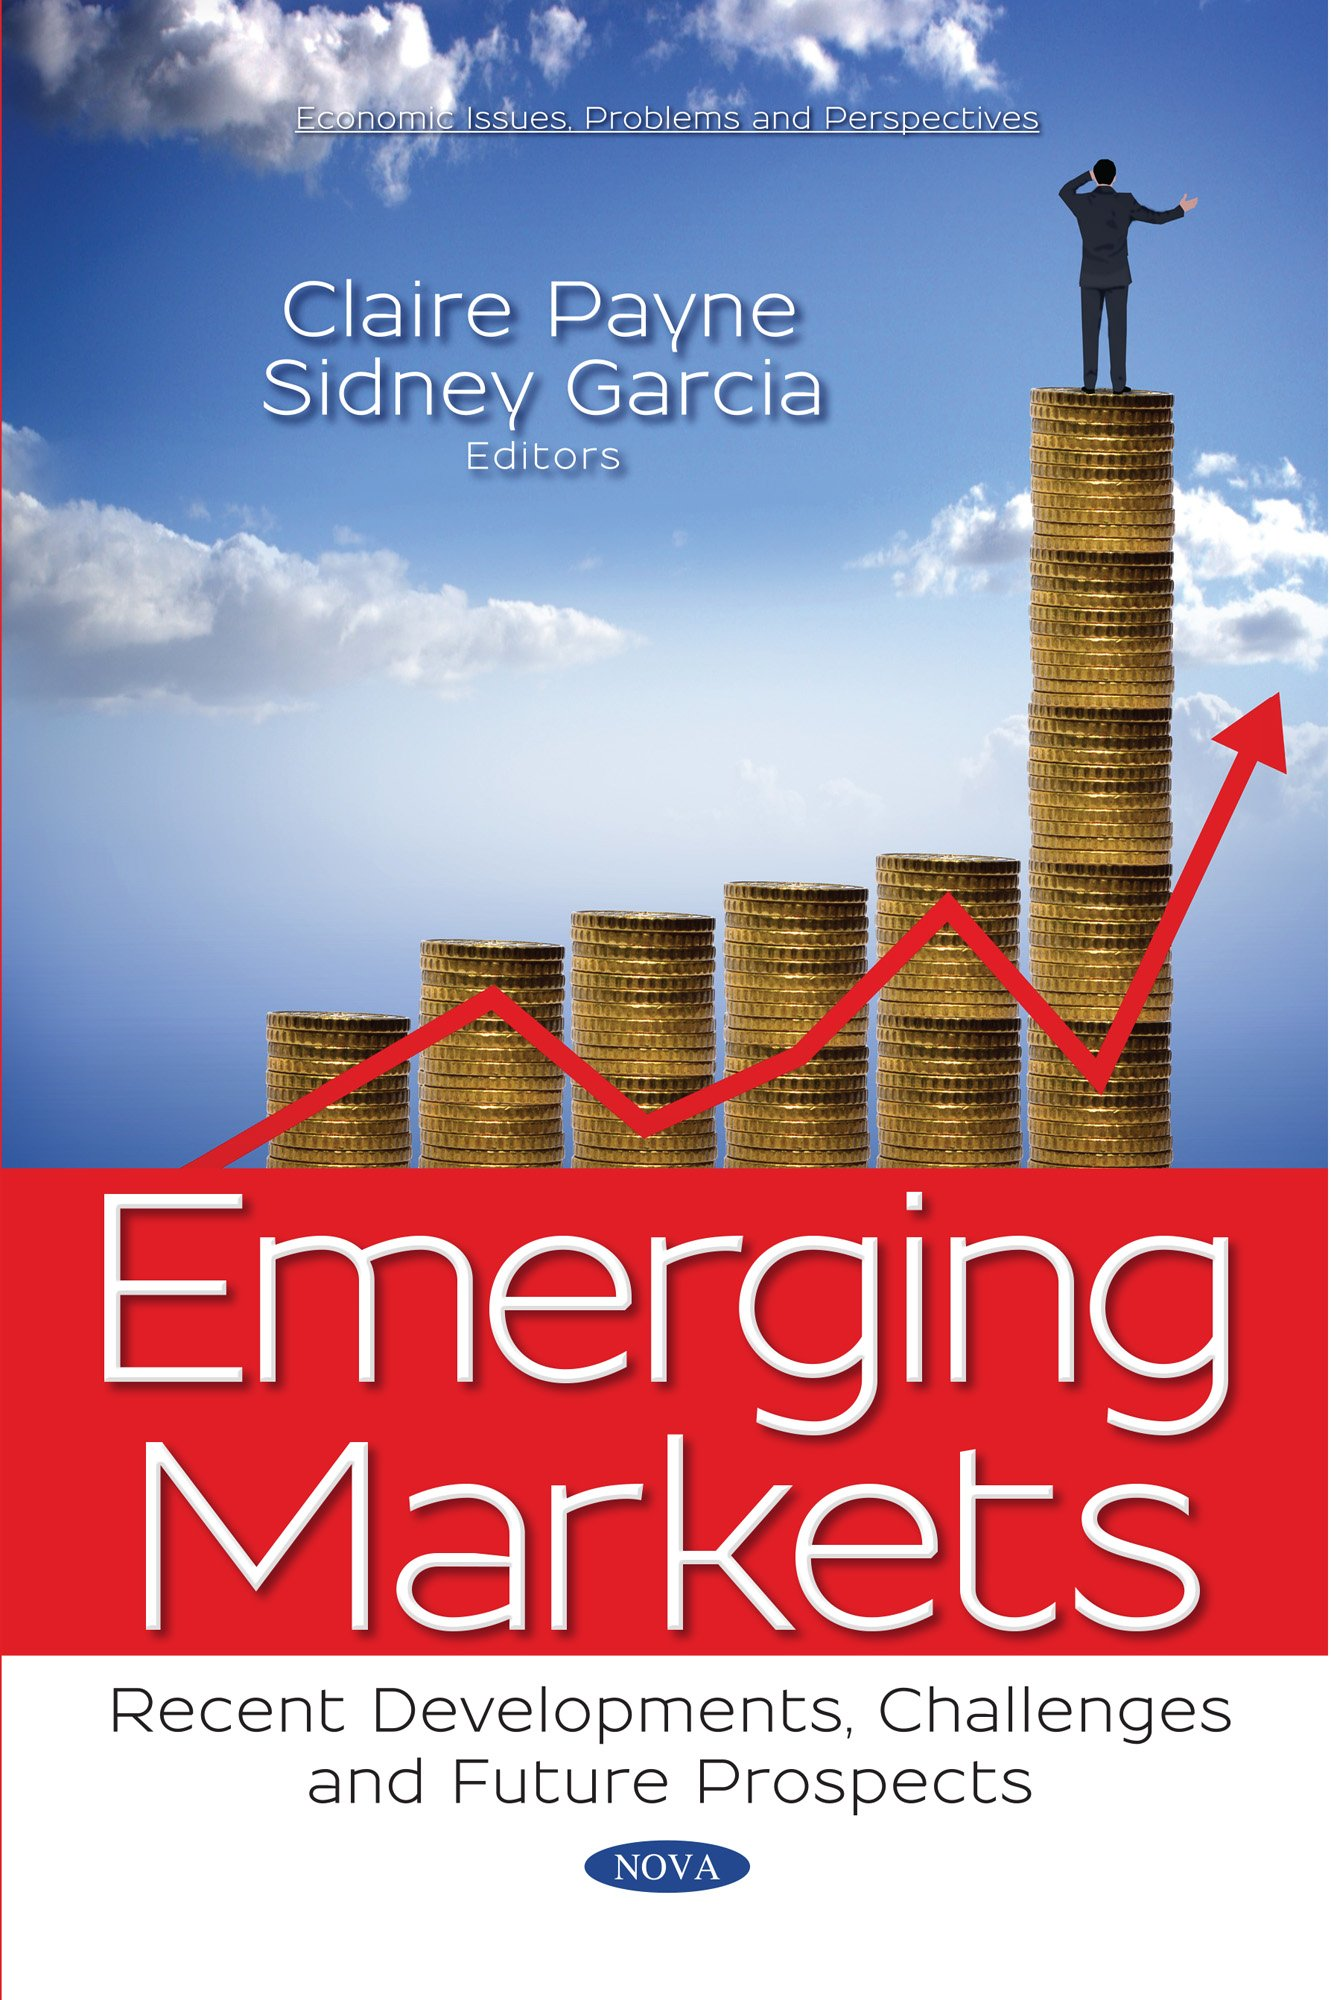 Emerging Markets: Recent Developments, Challenges and Future Prospects (Economic Issues, Problems and Perspectives)